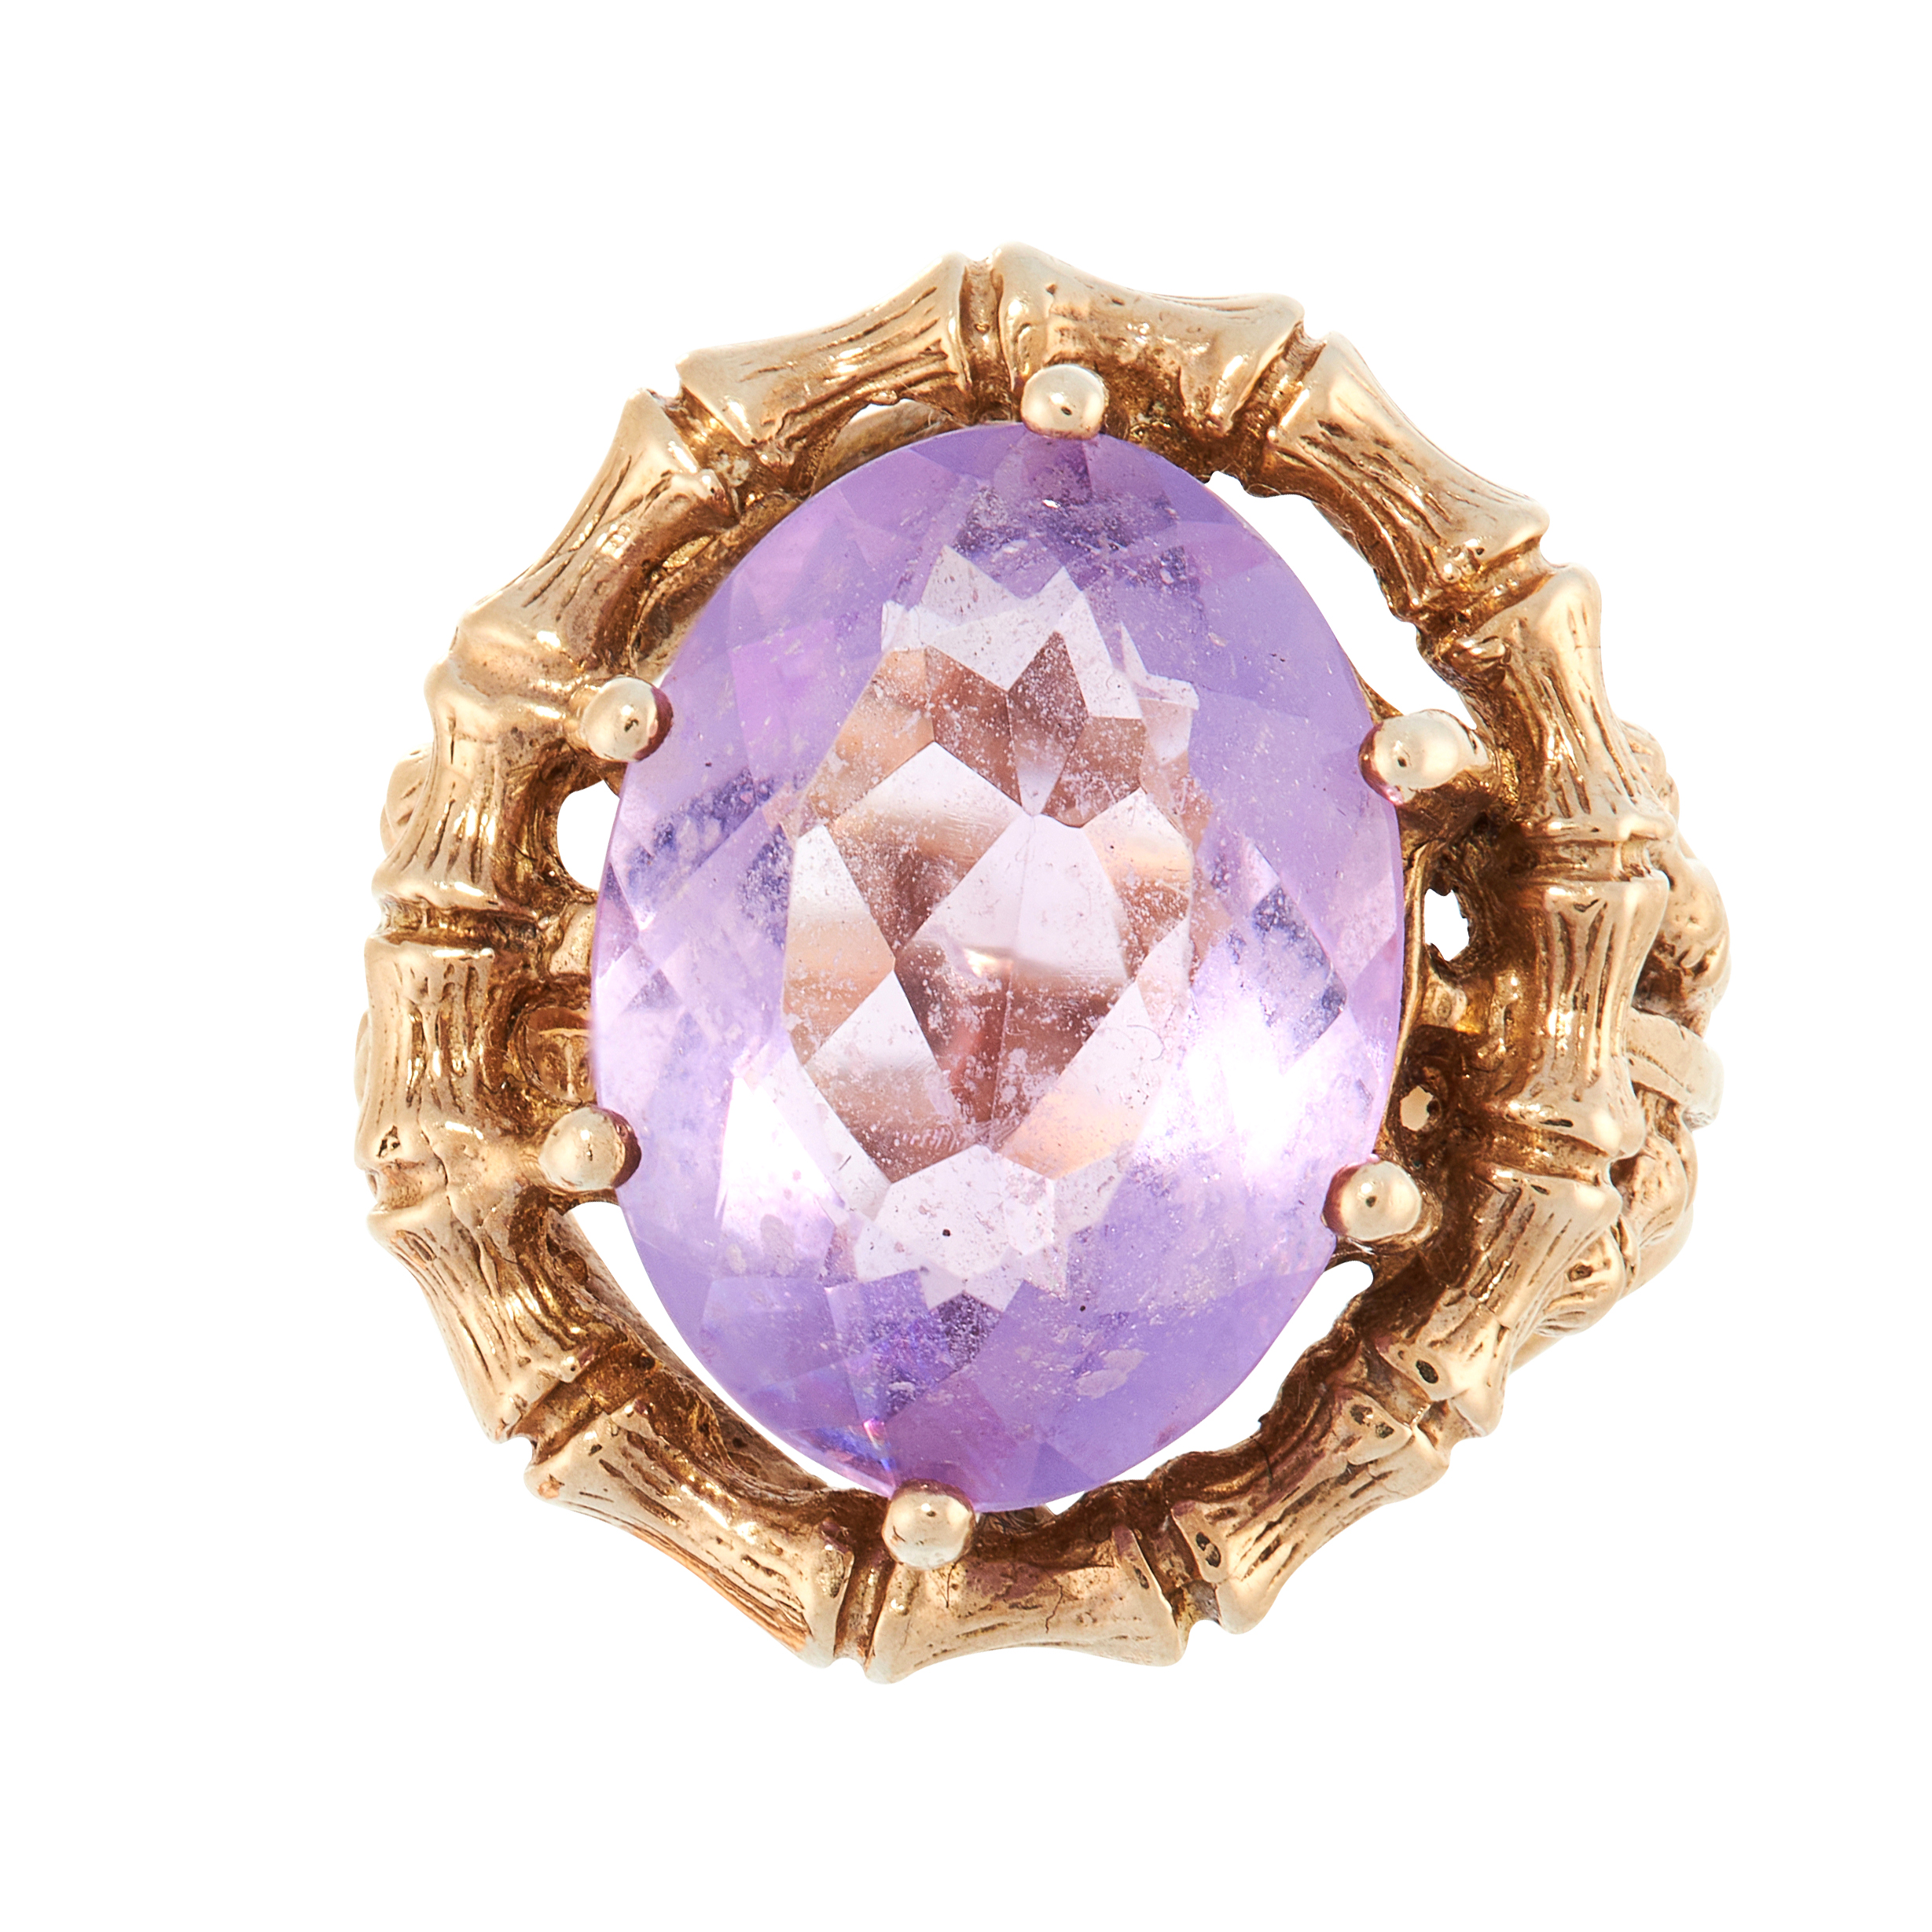 A VINTAGE AMETHYST DRESS RING, 1970 in yellow gold, set with an oval cut amethyst within a Chinese